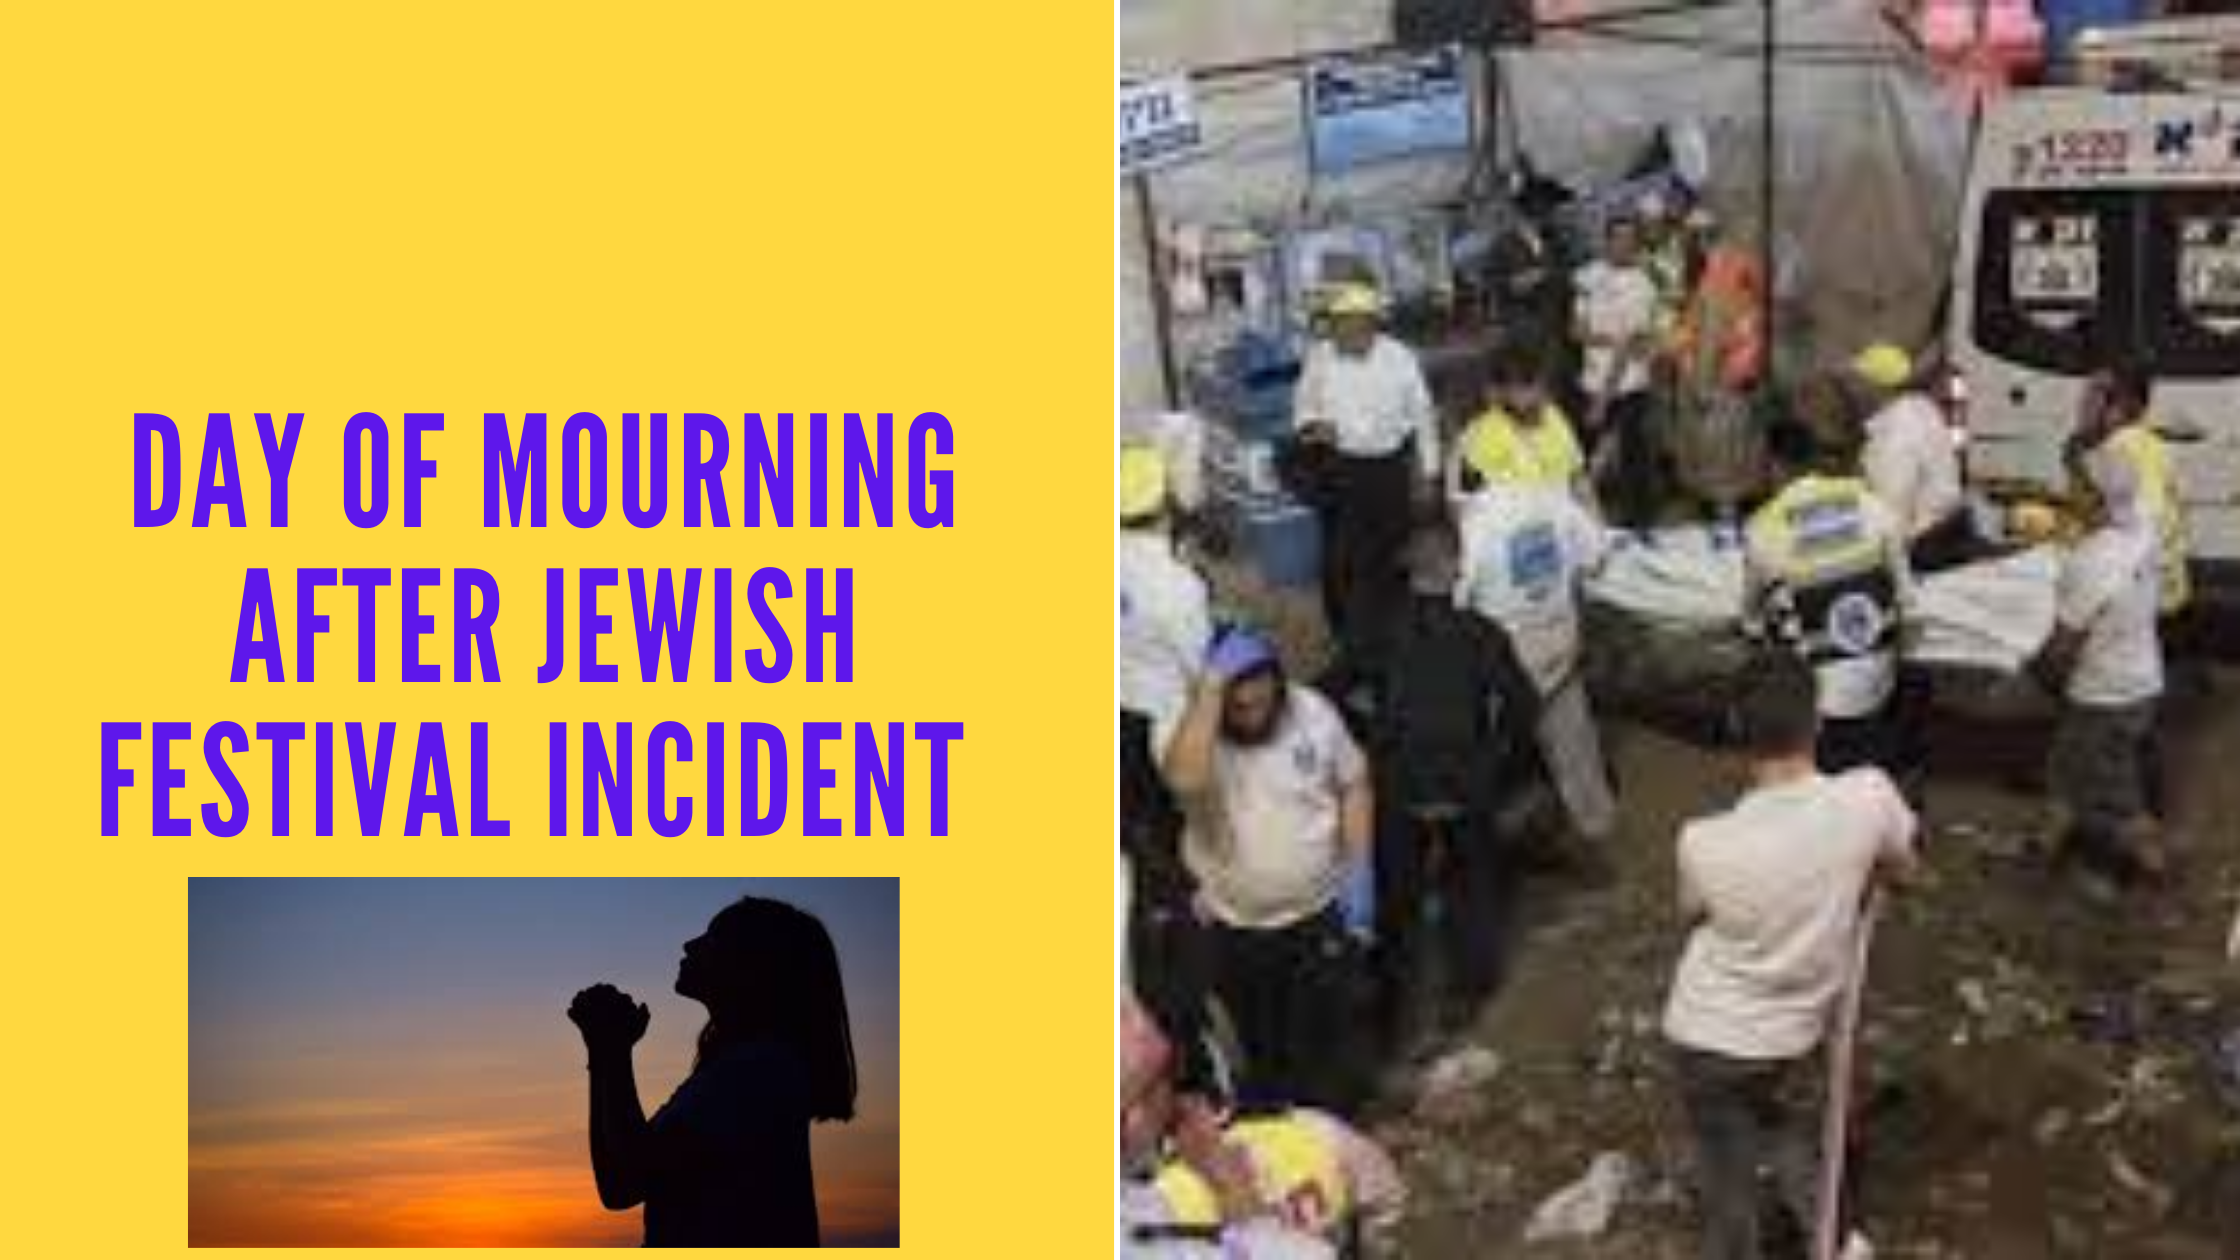 Day of mourning after Jewish Festival incident